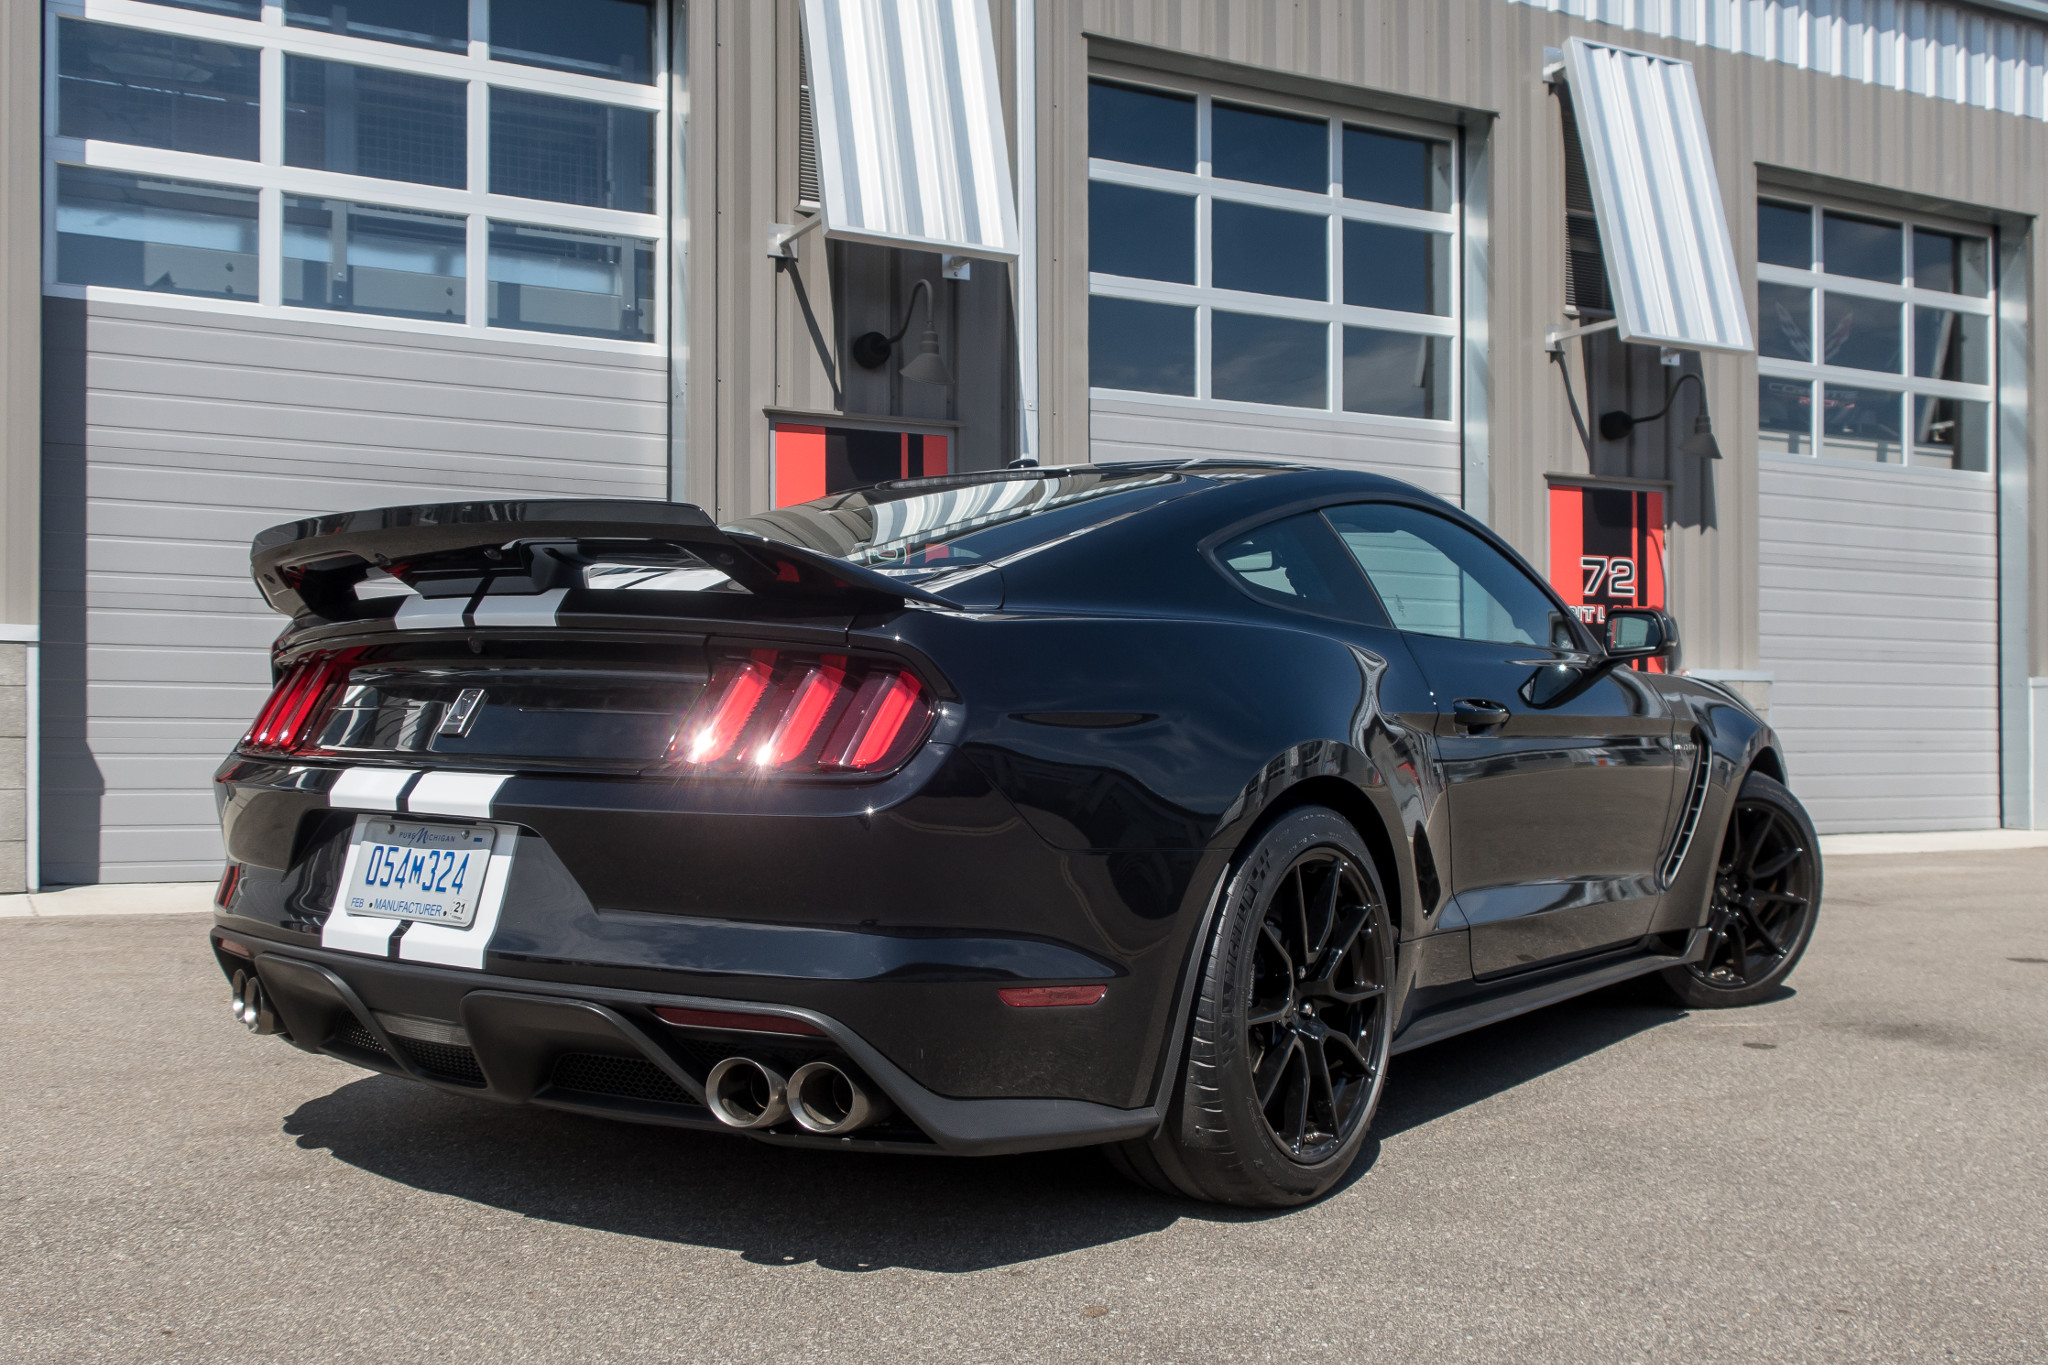 Ford Com Mustang >> 2019 Ford Mustang Shelby Gt350 First Drive Is This The Best Mustang